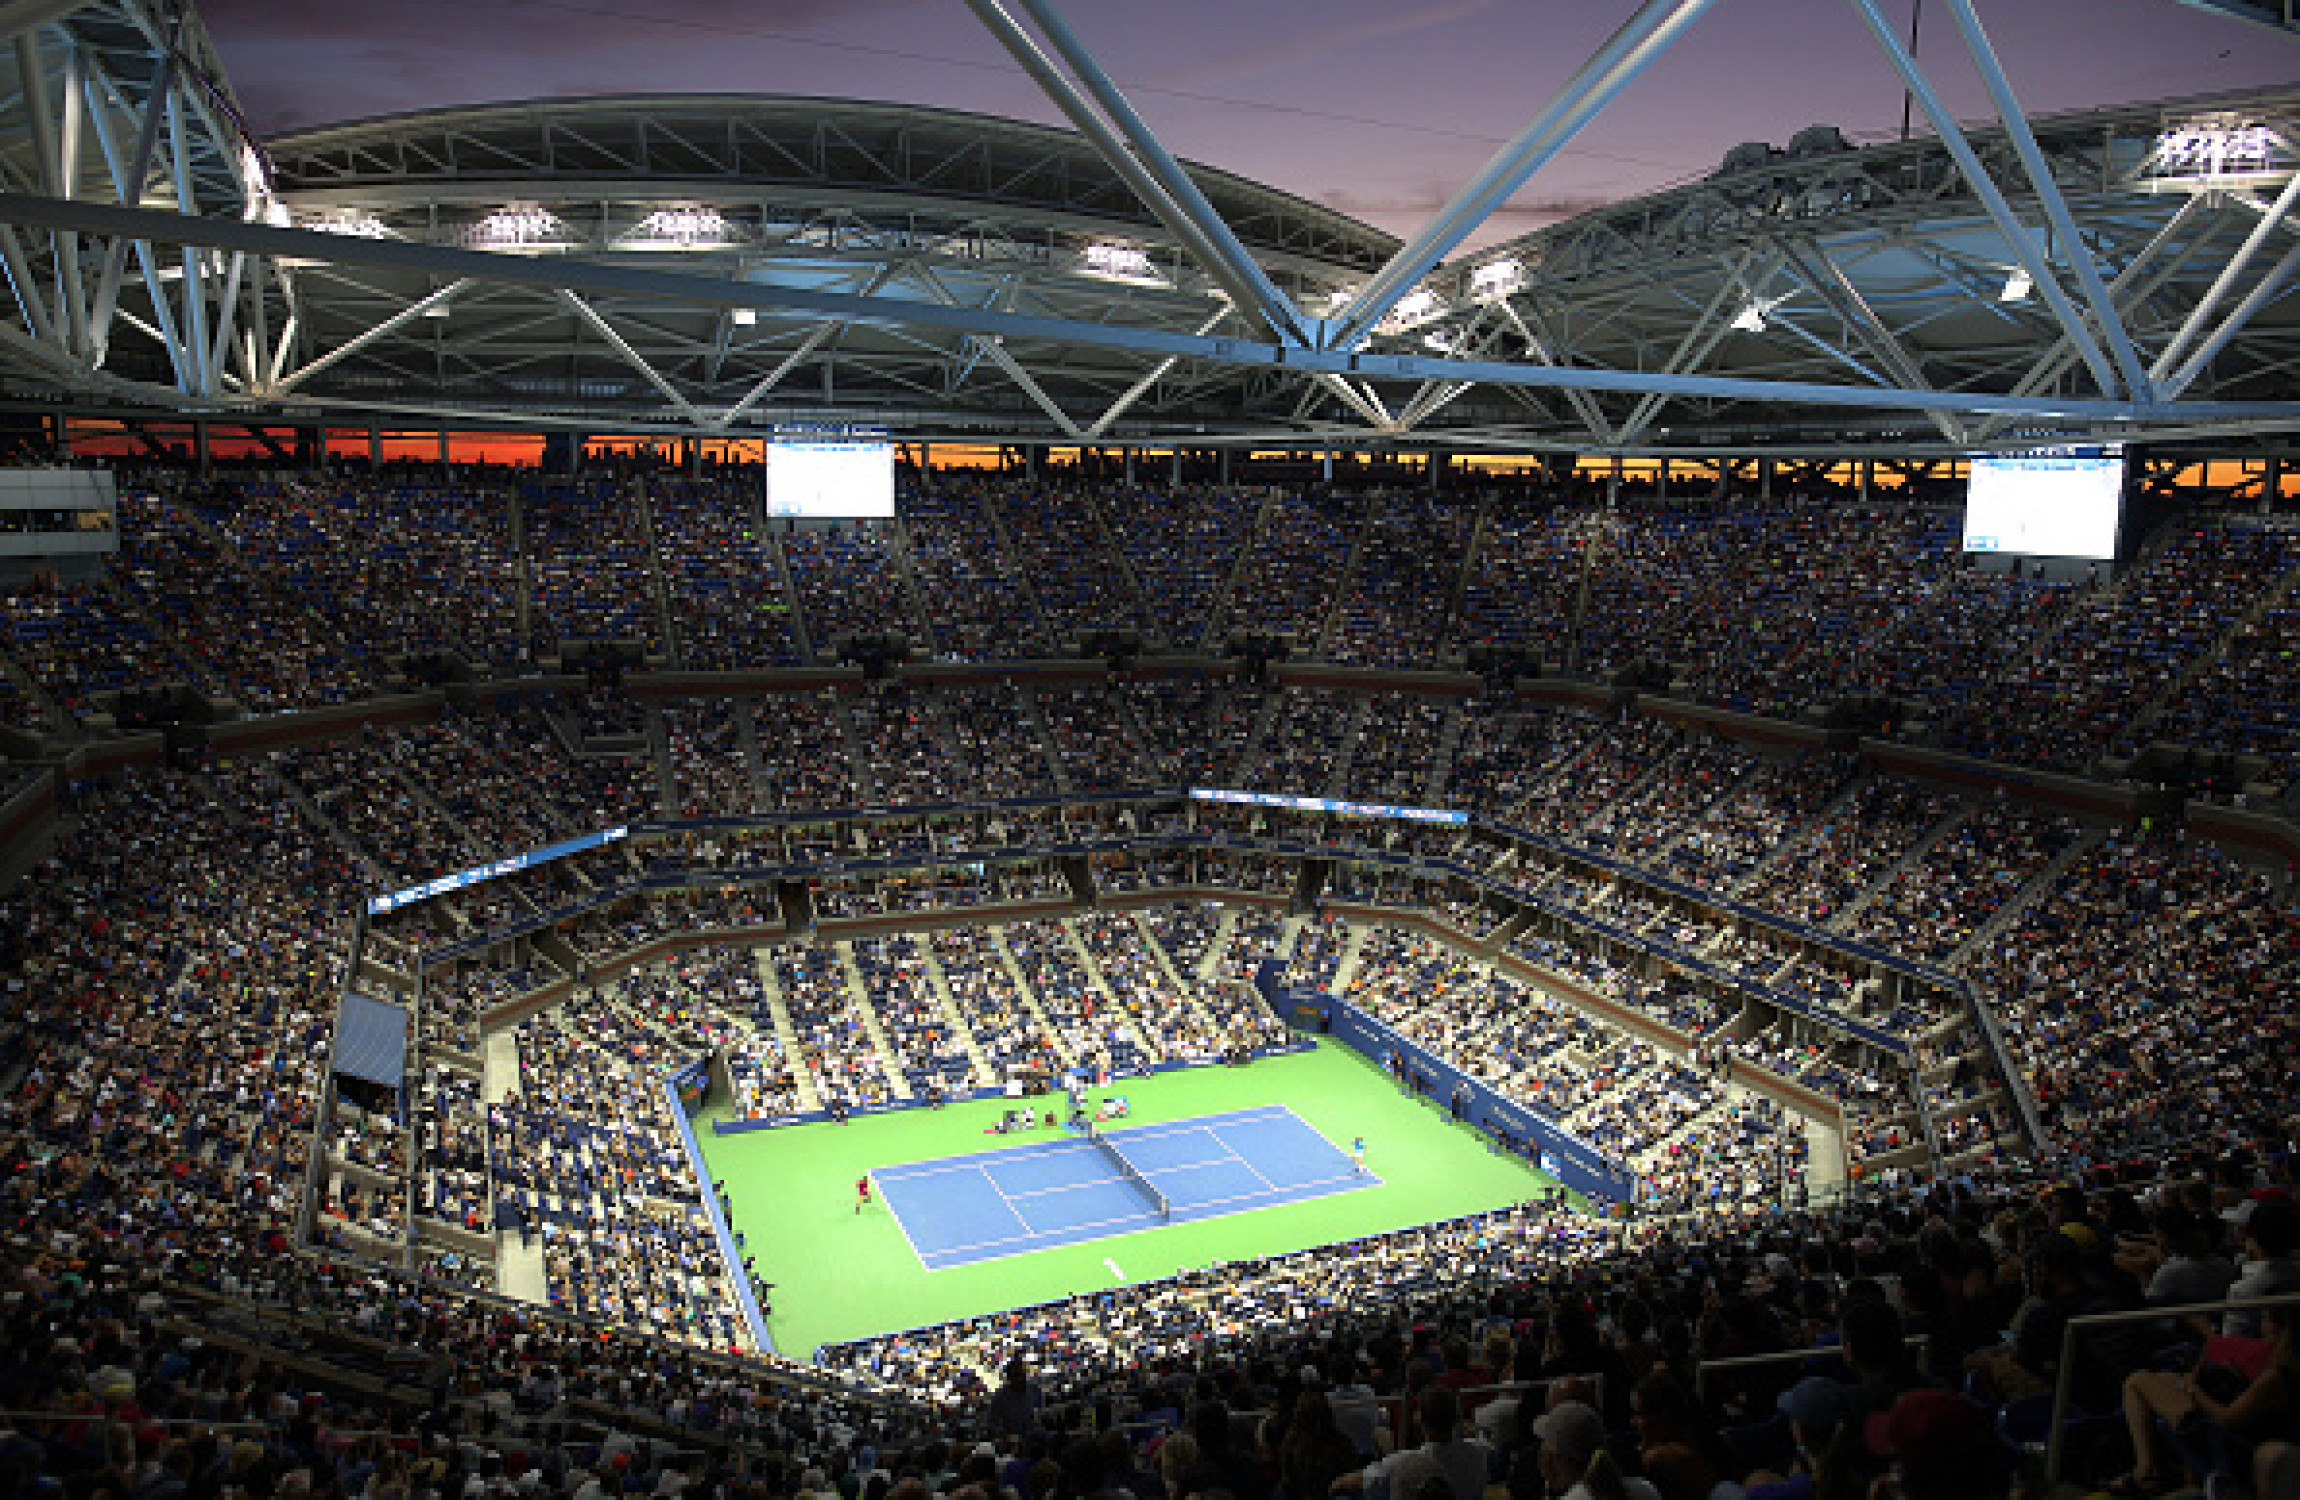 Amazon Scores UK Rights for US Open Tennis Championships